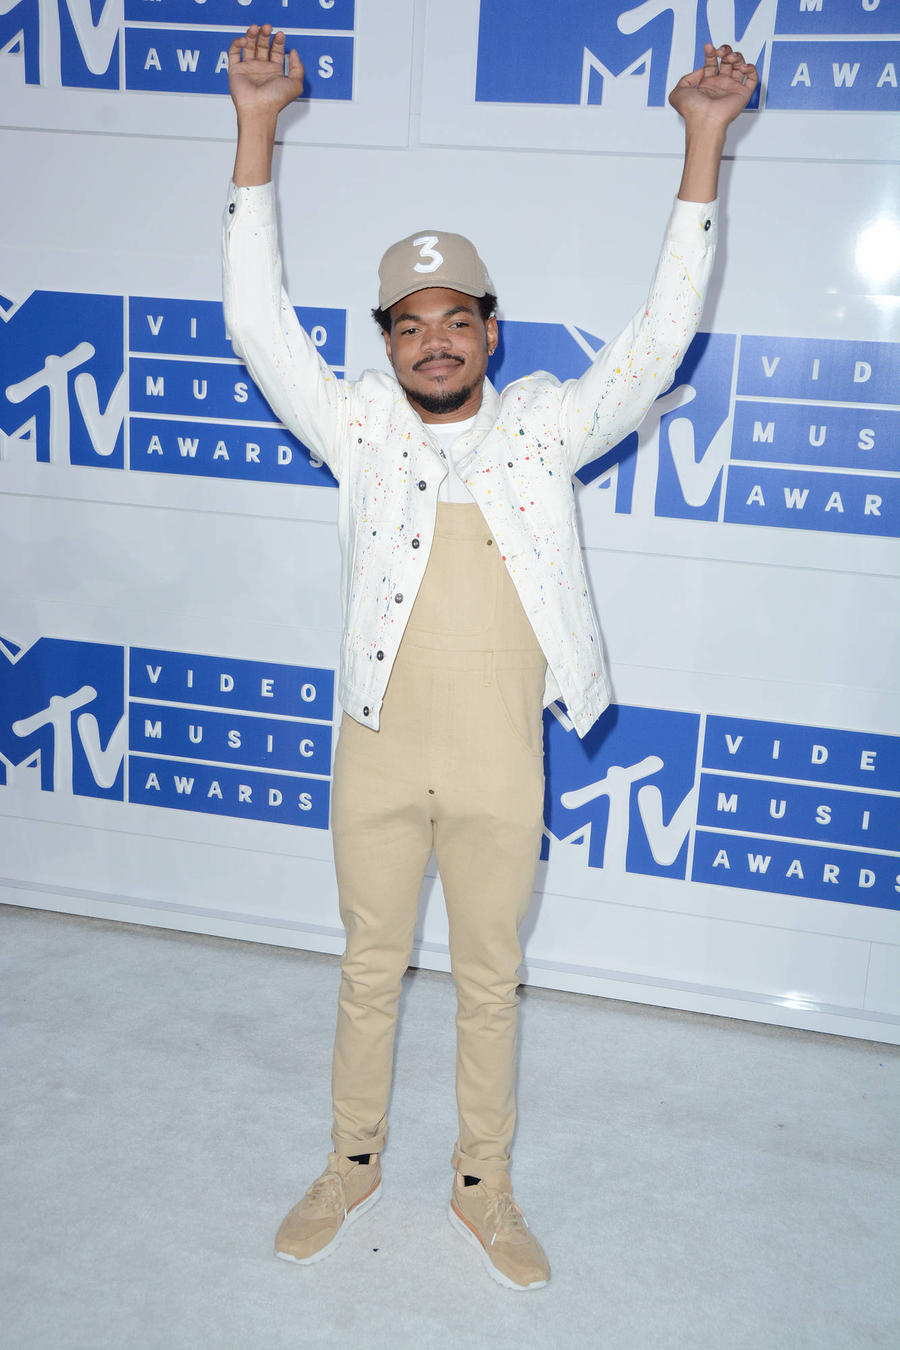 Chance The Rapper's Girlfriend Withdraws Legal Papers Over Parenting Schedule